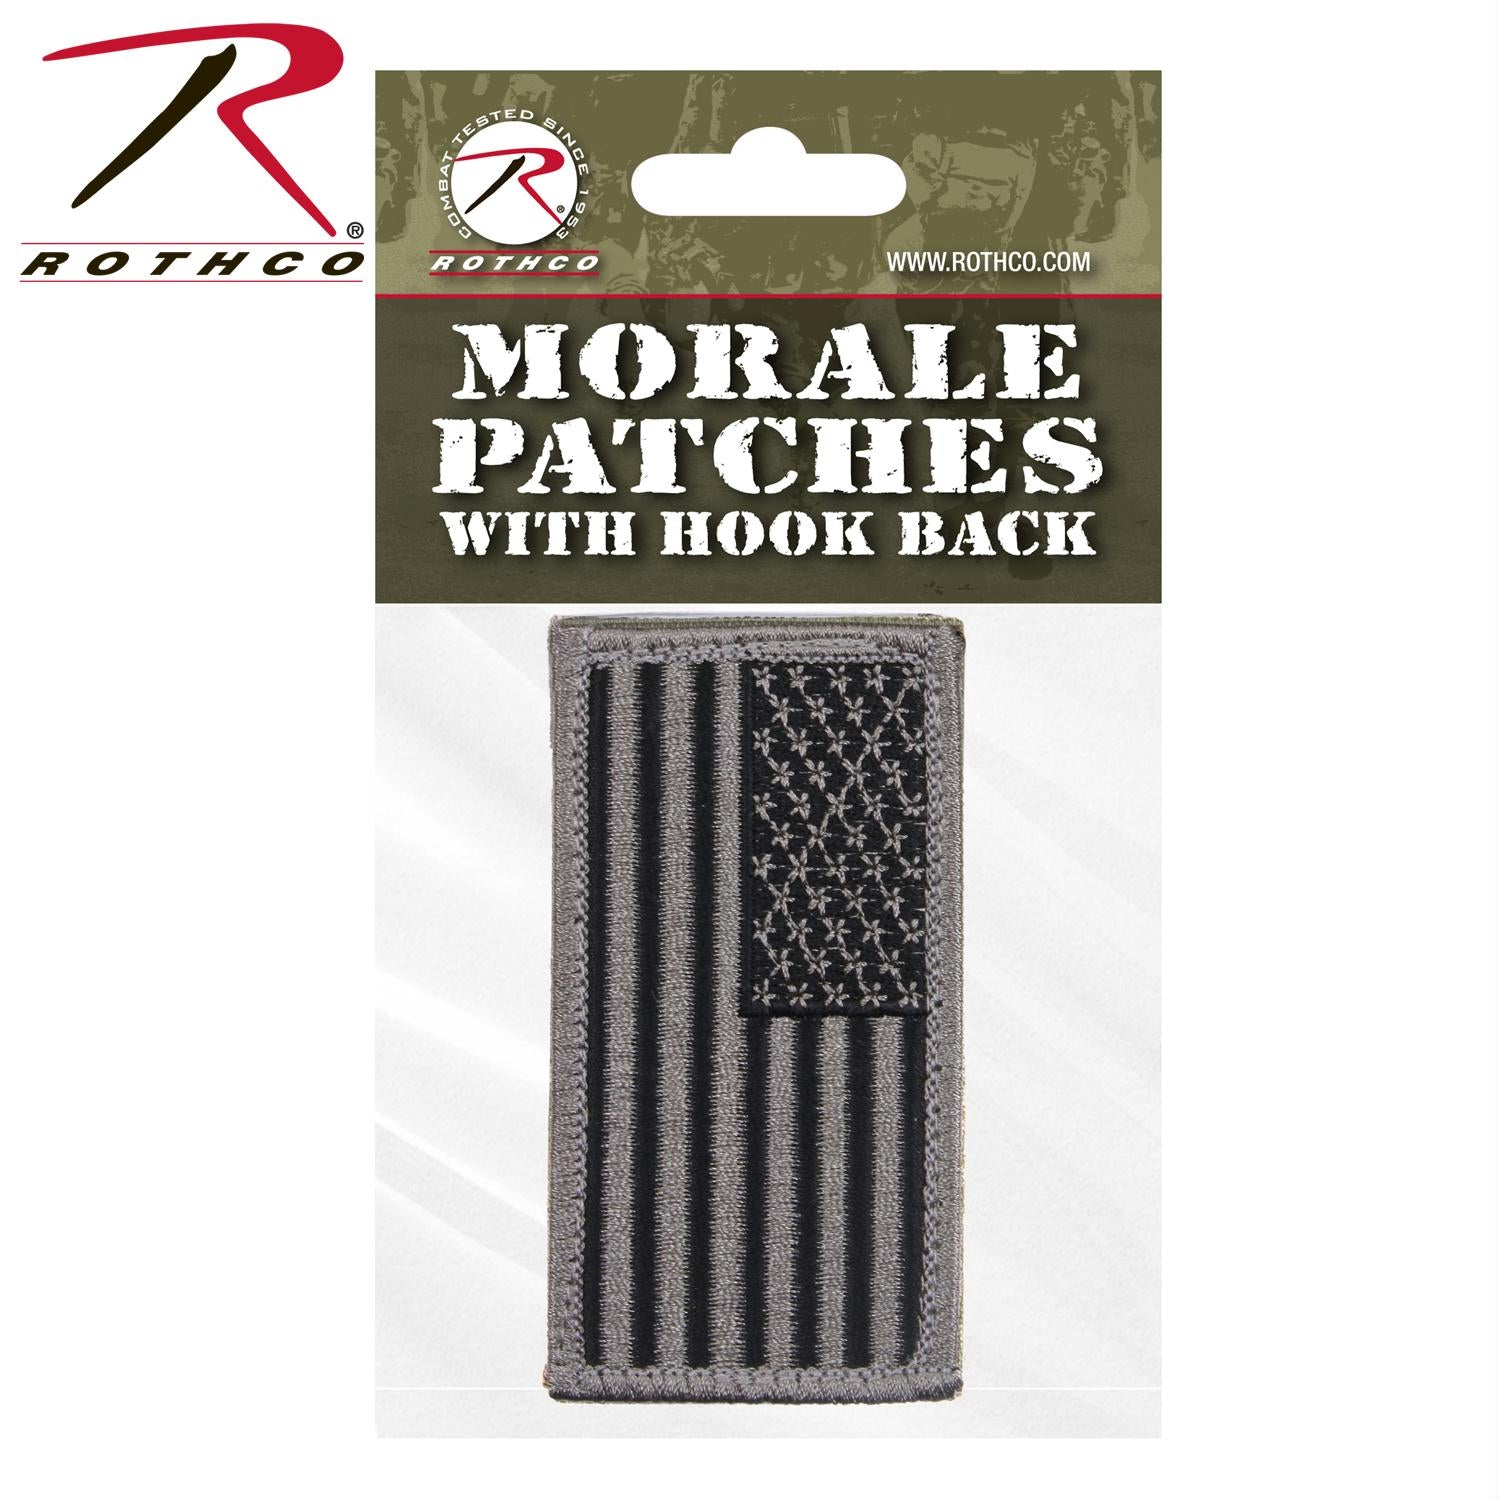 Rothco American Flag Patch - Foliage Green / Normal / Header Card